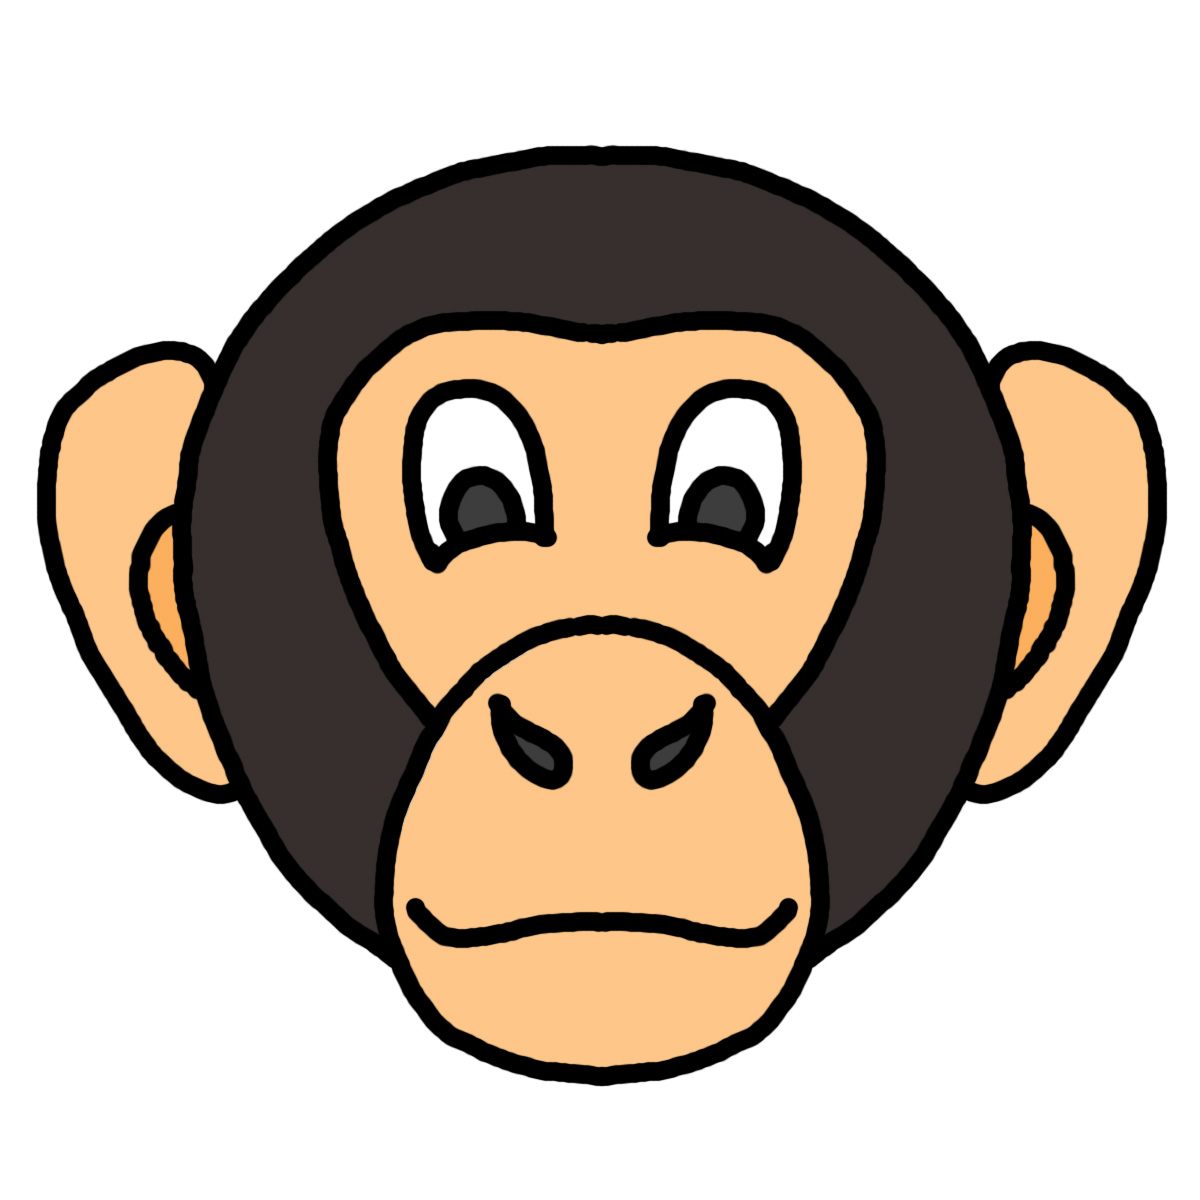 Symmetry clipart gorilla head On Animal Face Free arts